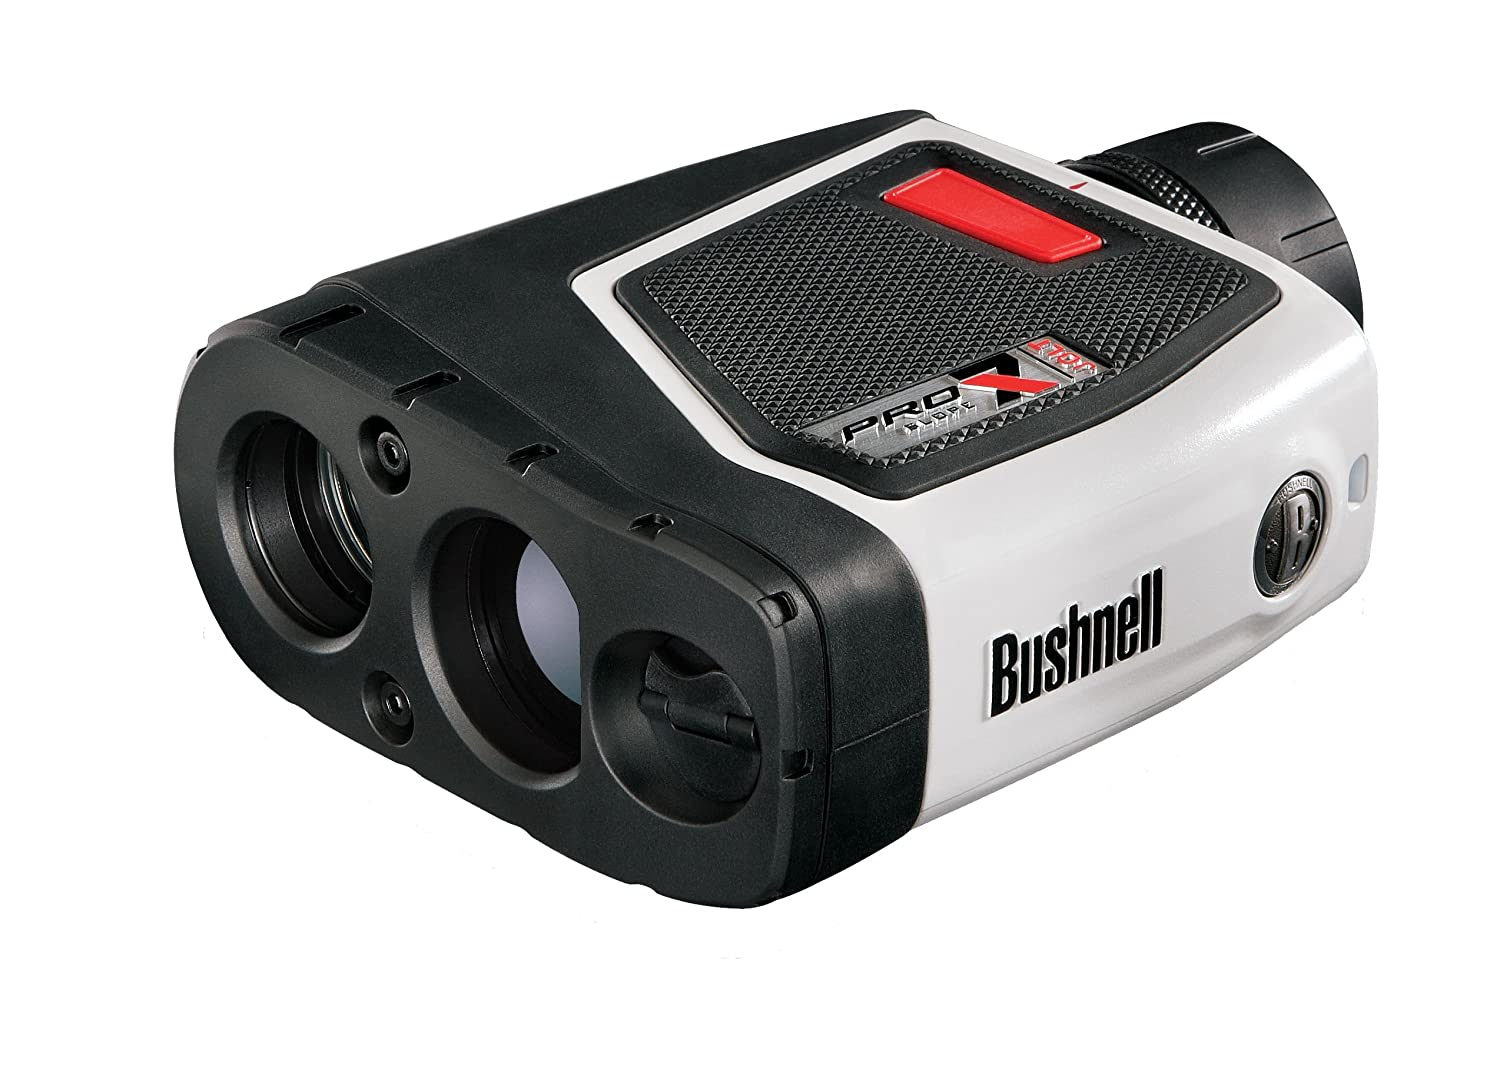 Bushnell-Pro-X7-Slope-Golf-Laser-Rangefinder-with-JOLT